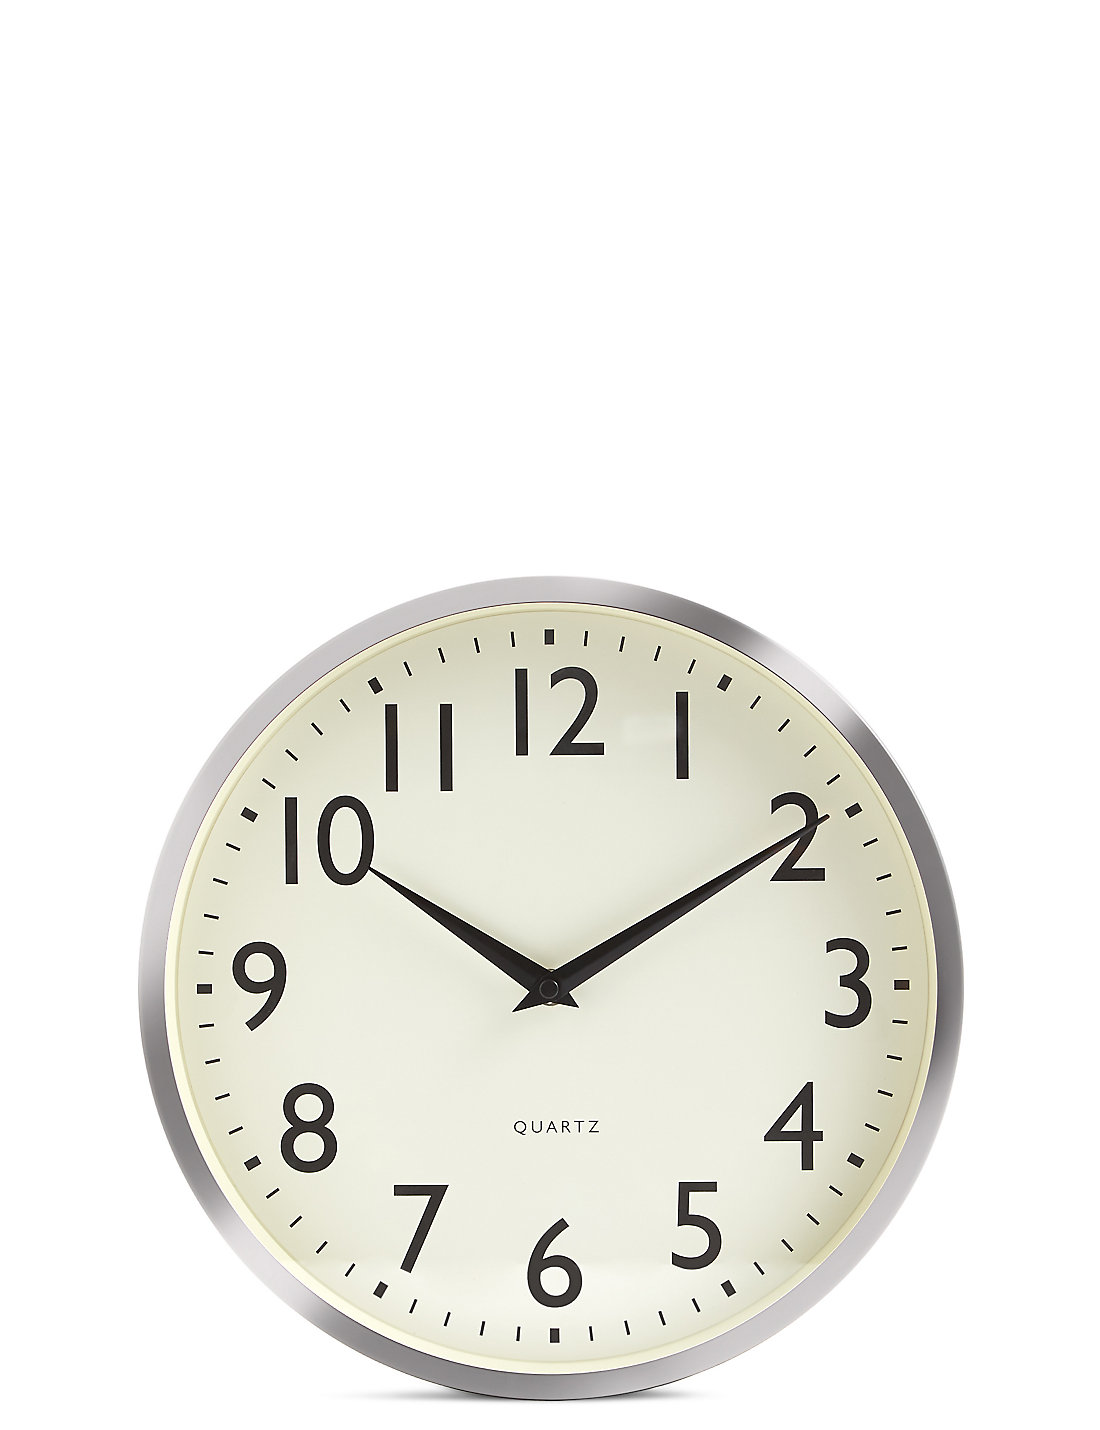 Wall clocks vintage station clocks ms bold arabic wall clock amipublicfo Choice Image